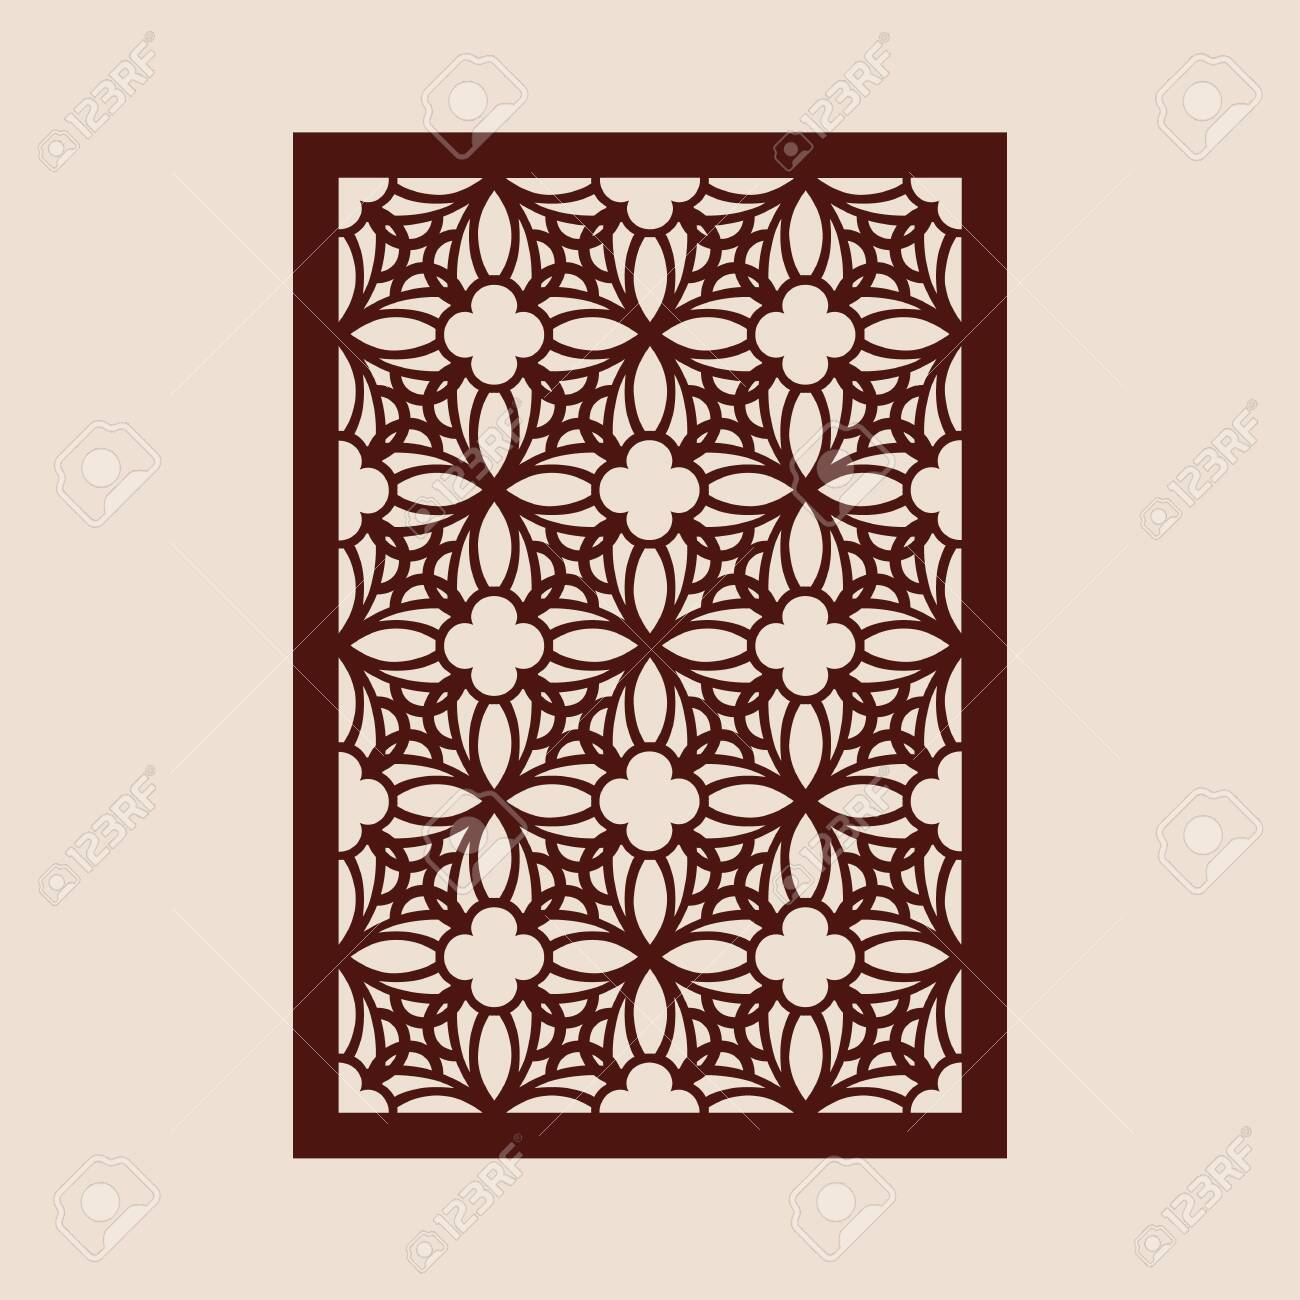 Floral geometric ornament. The template pattern for decorative panel. A picture suitable for paper cutting, printing, laser cutting or engraving wood, metal. Stencil manufacturing. Vector - 143968109